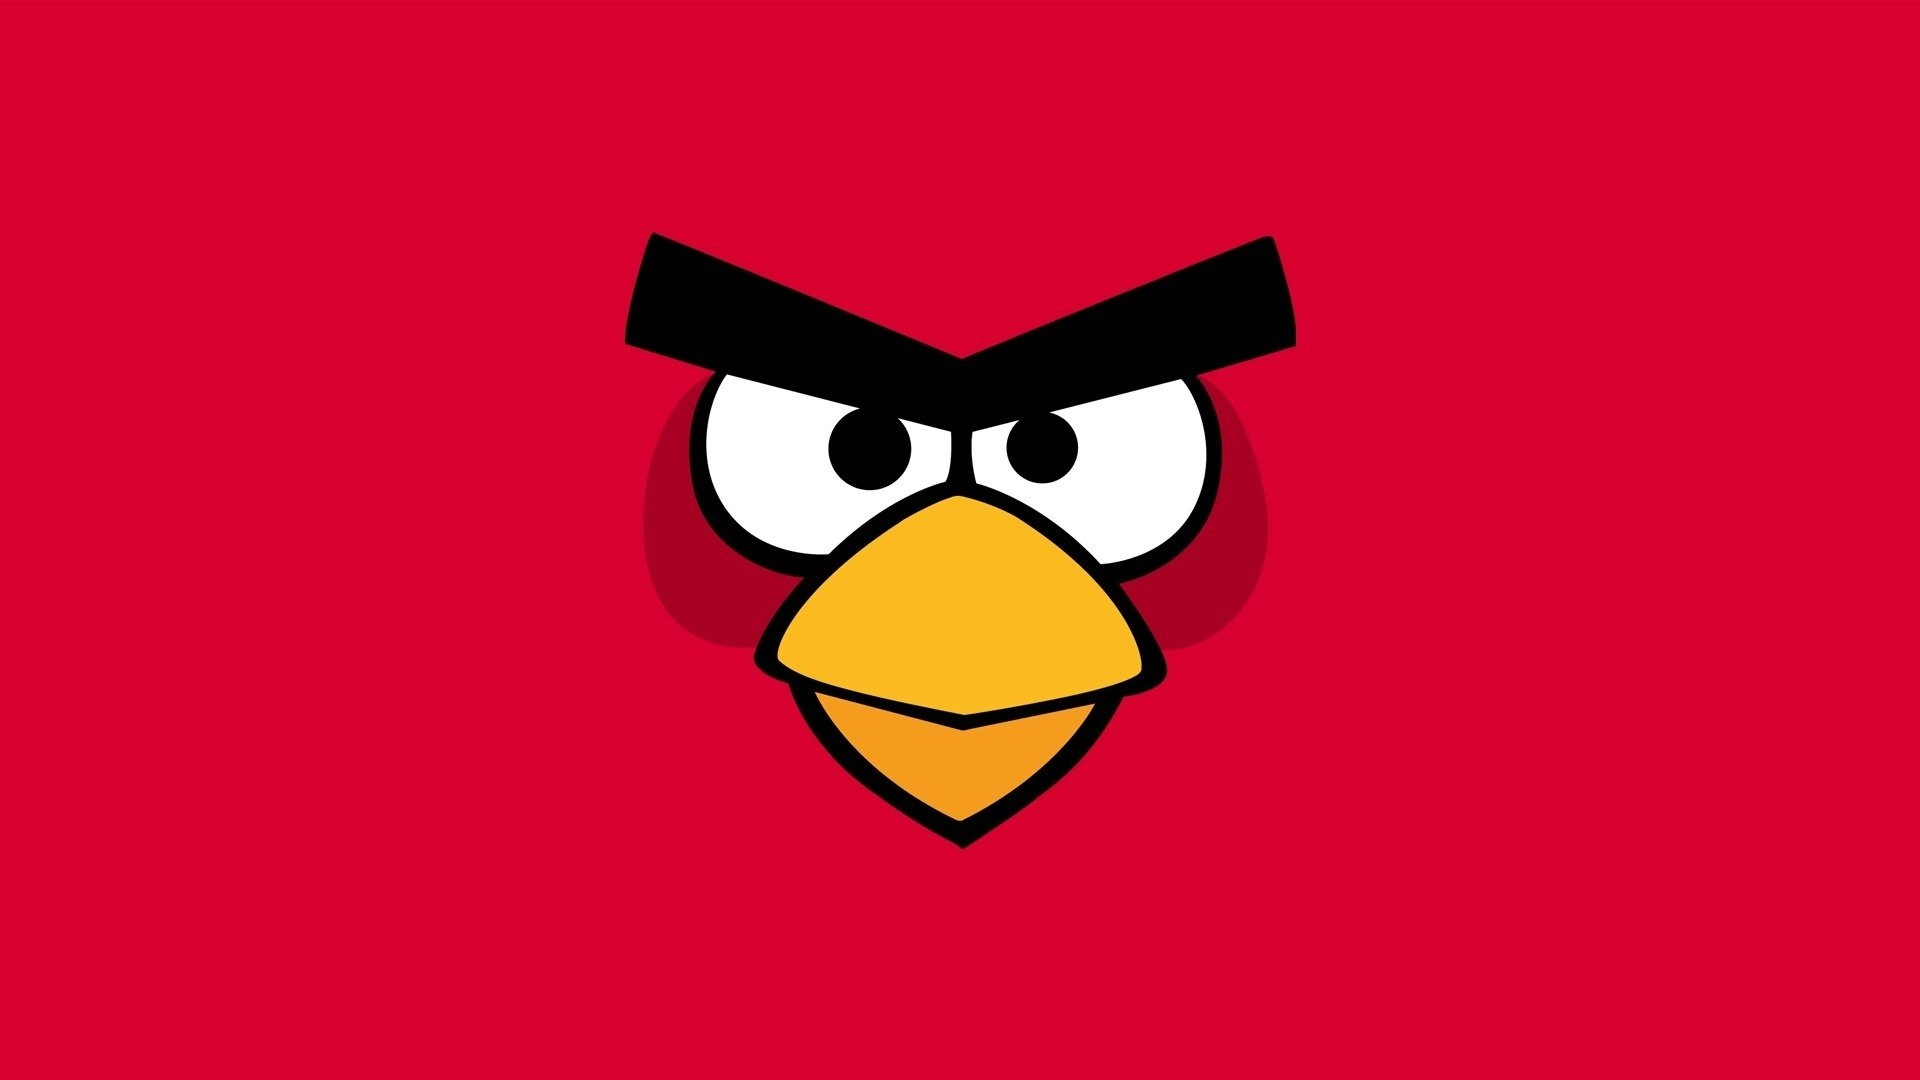 Angry Birds Wallpapers 1920x1080 Full HD (1080p) Desktop